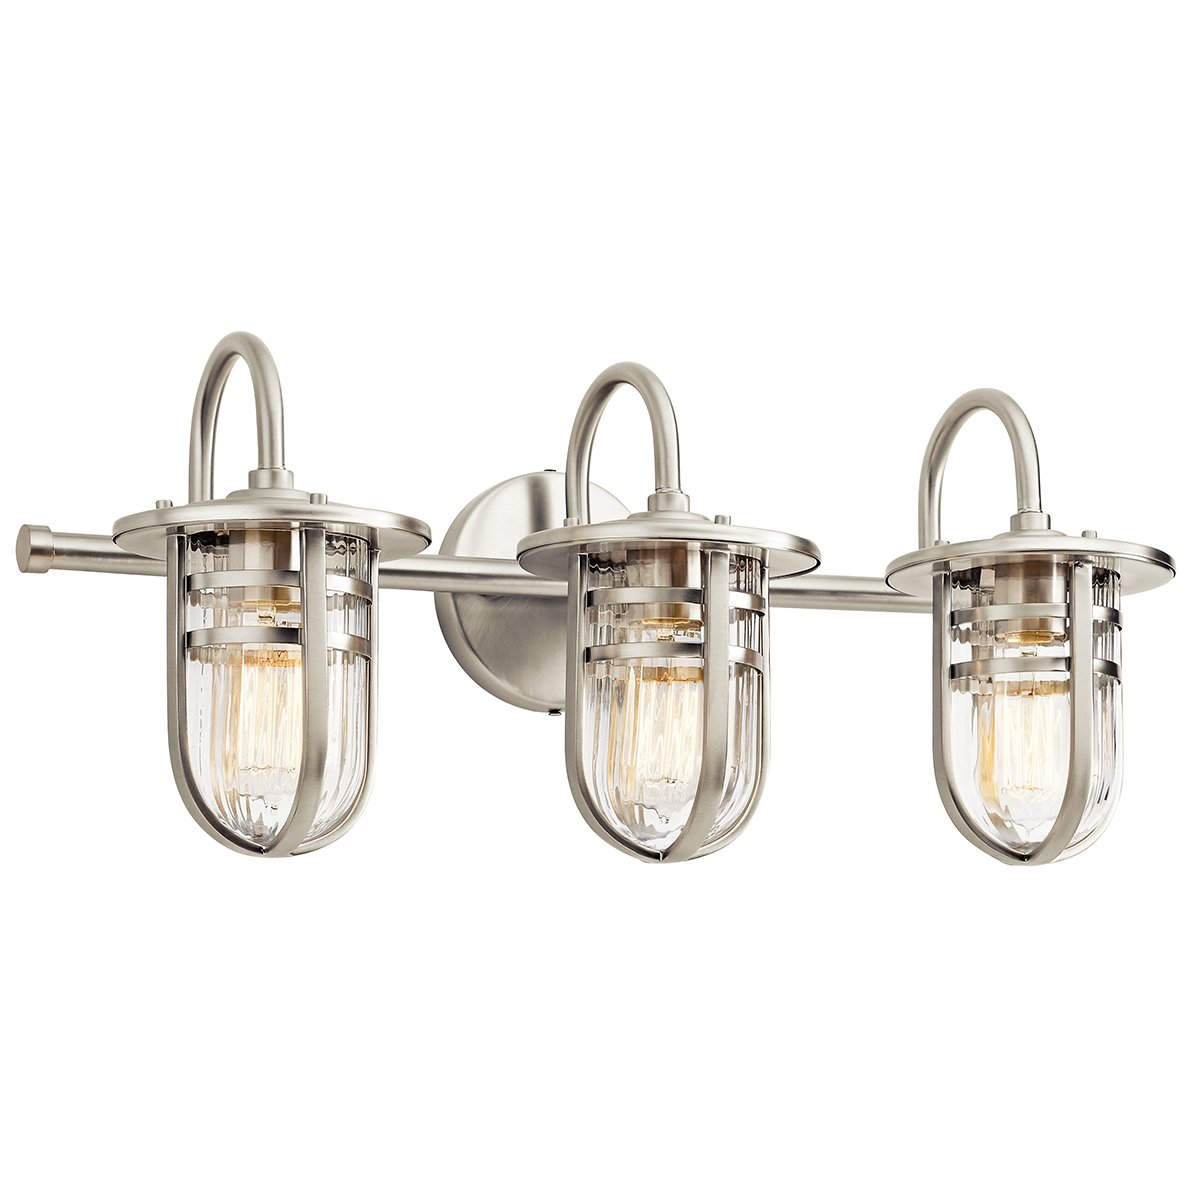 Kichler 45133NI Caparros 3-Light Bath in Brushed Nickel - - Amazon.com